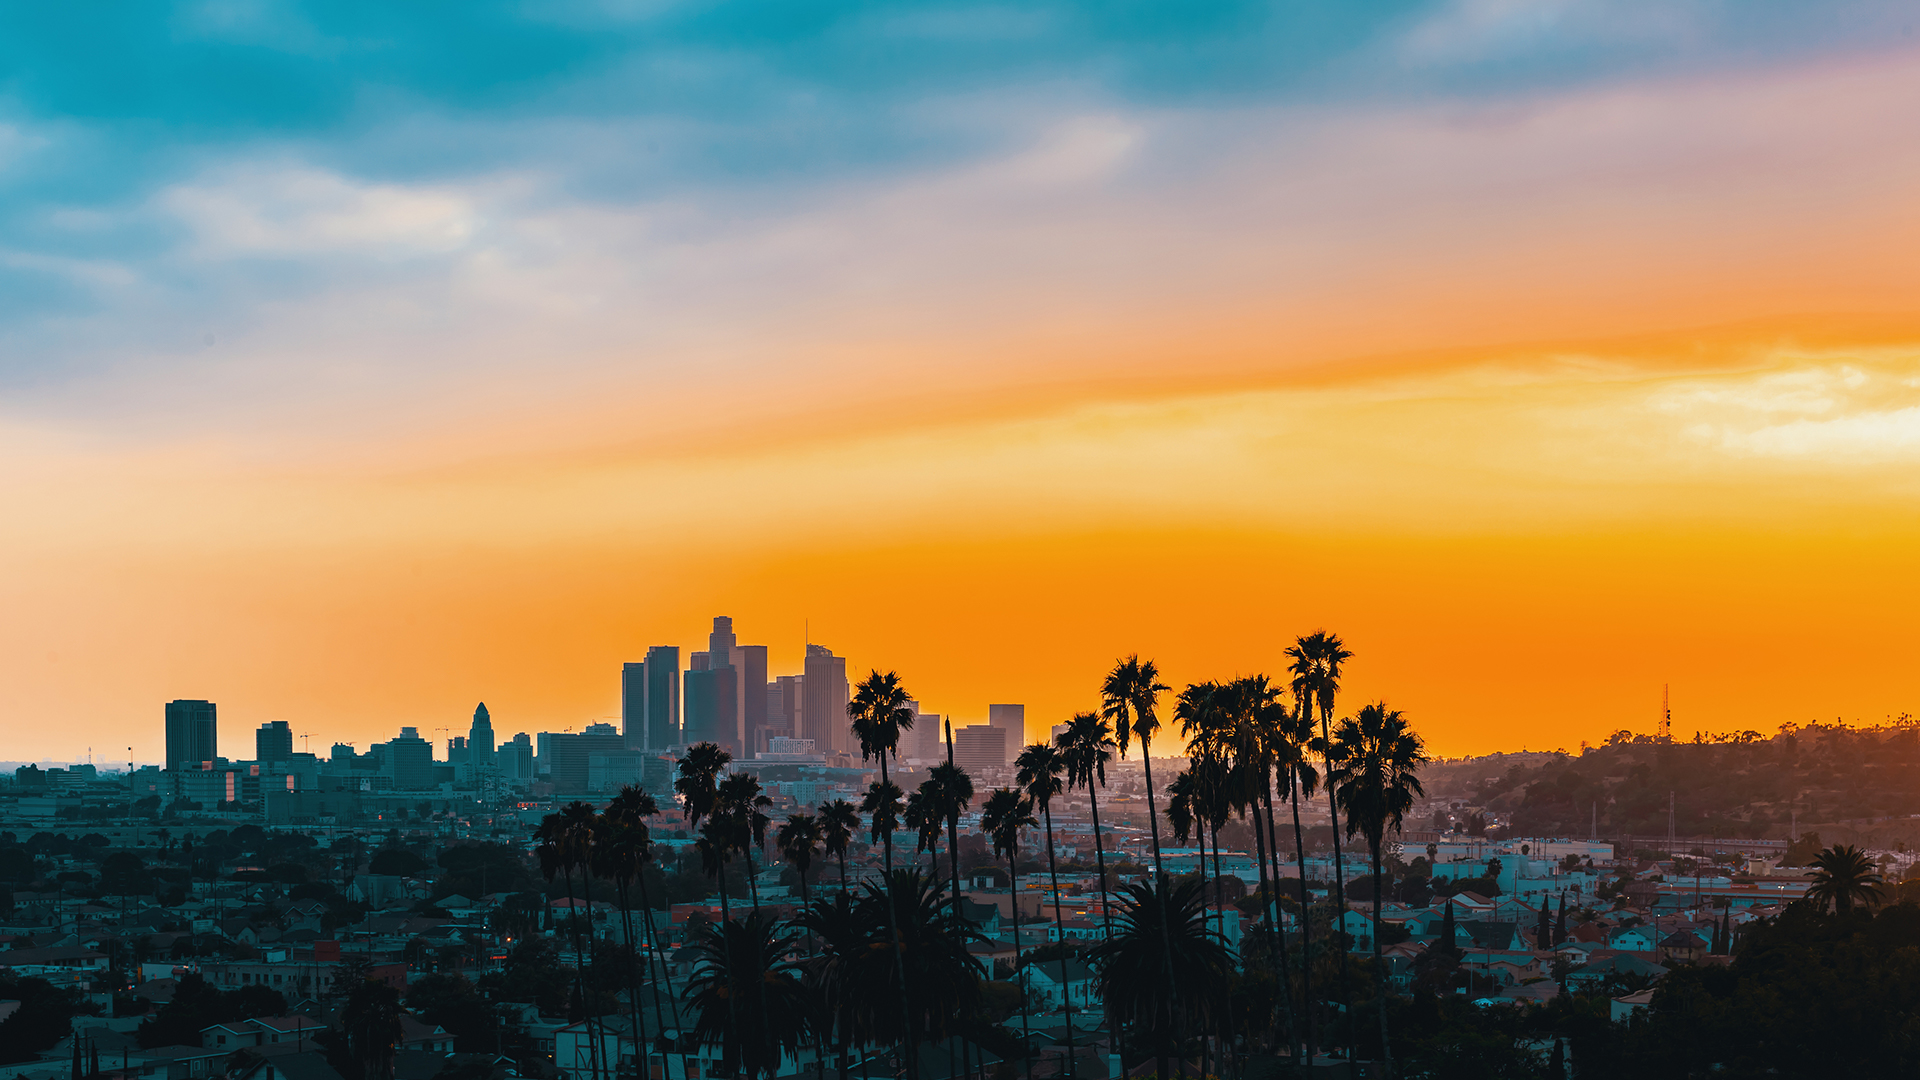 Sunset over downtown L.A.